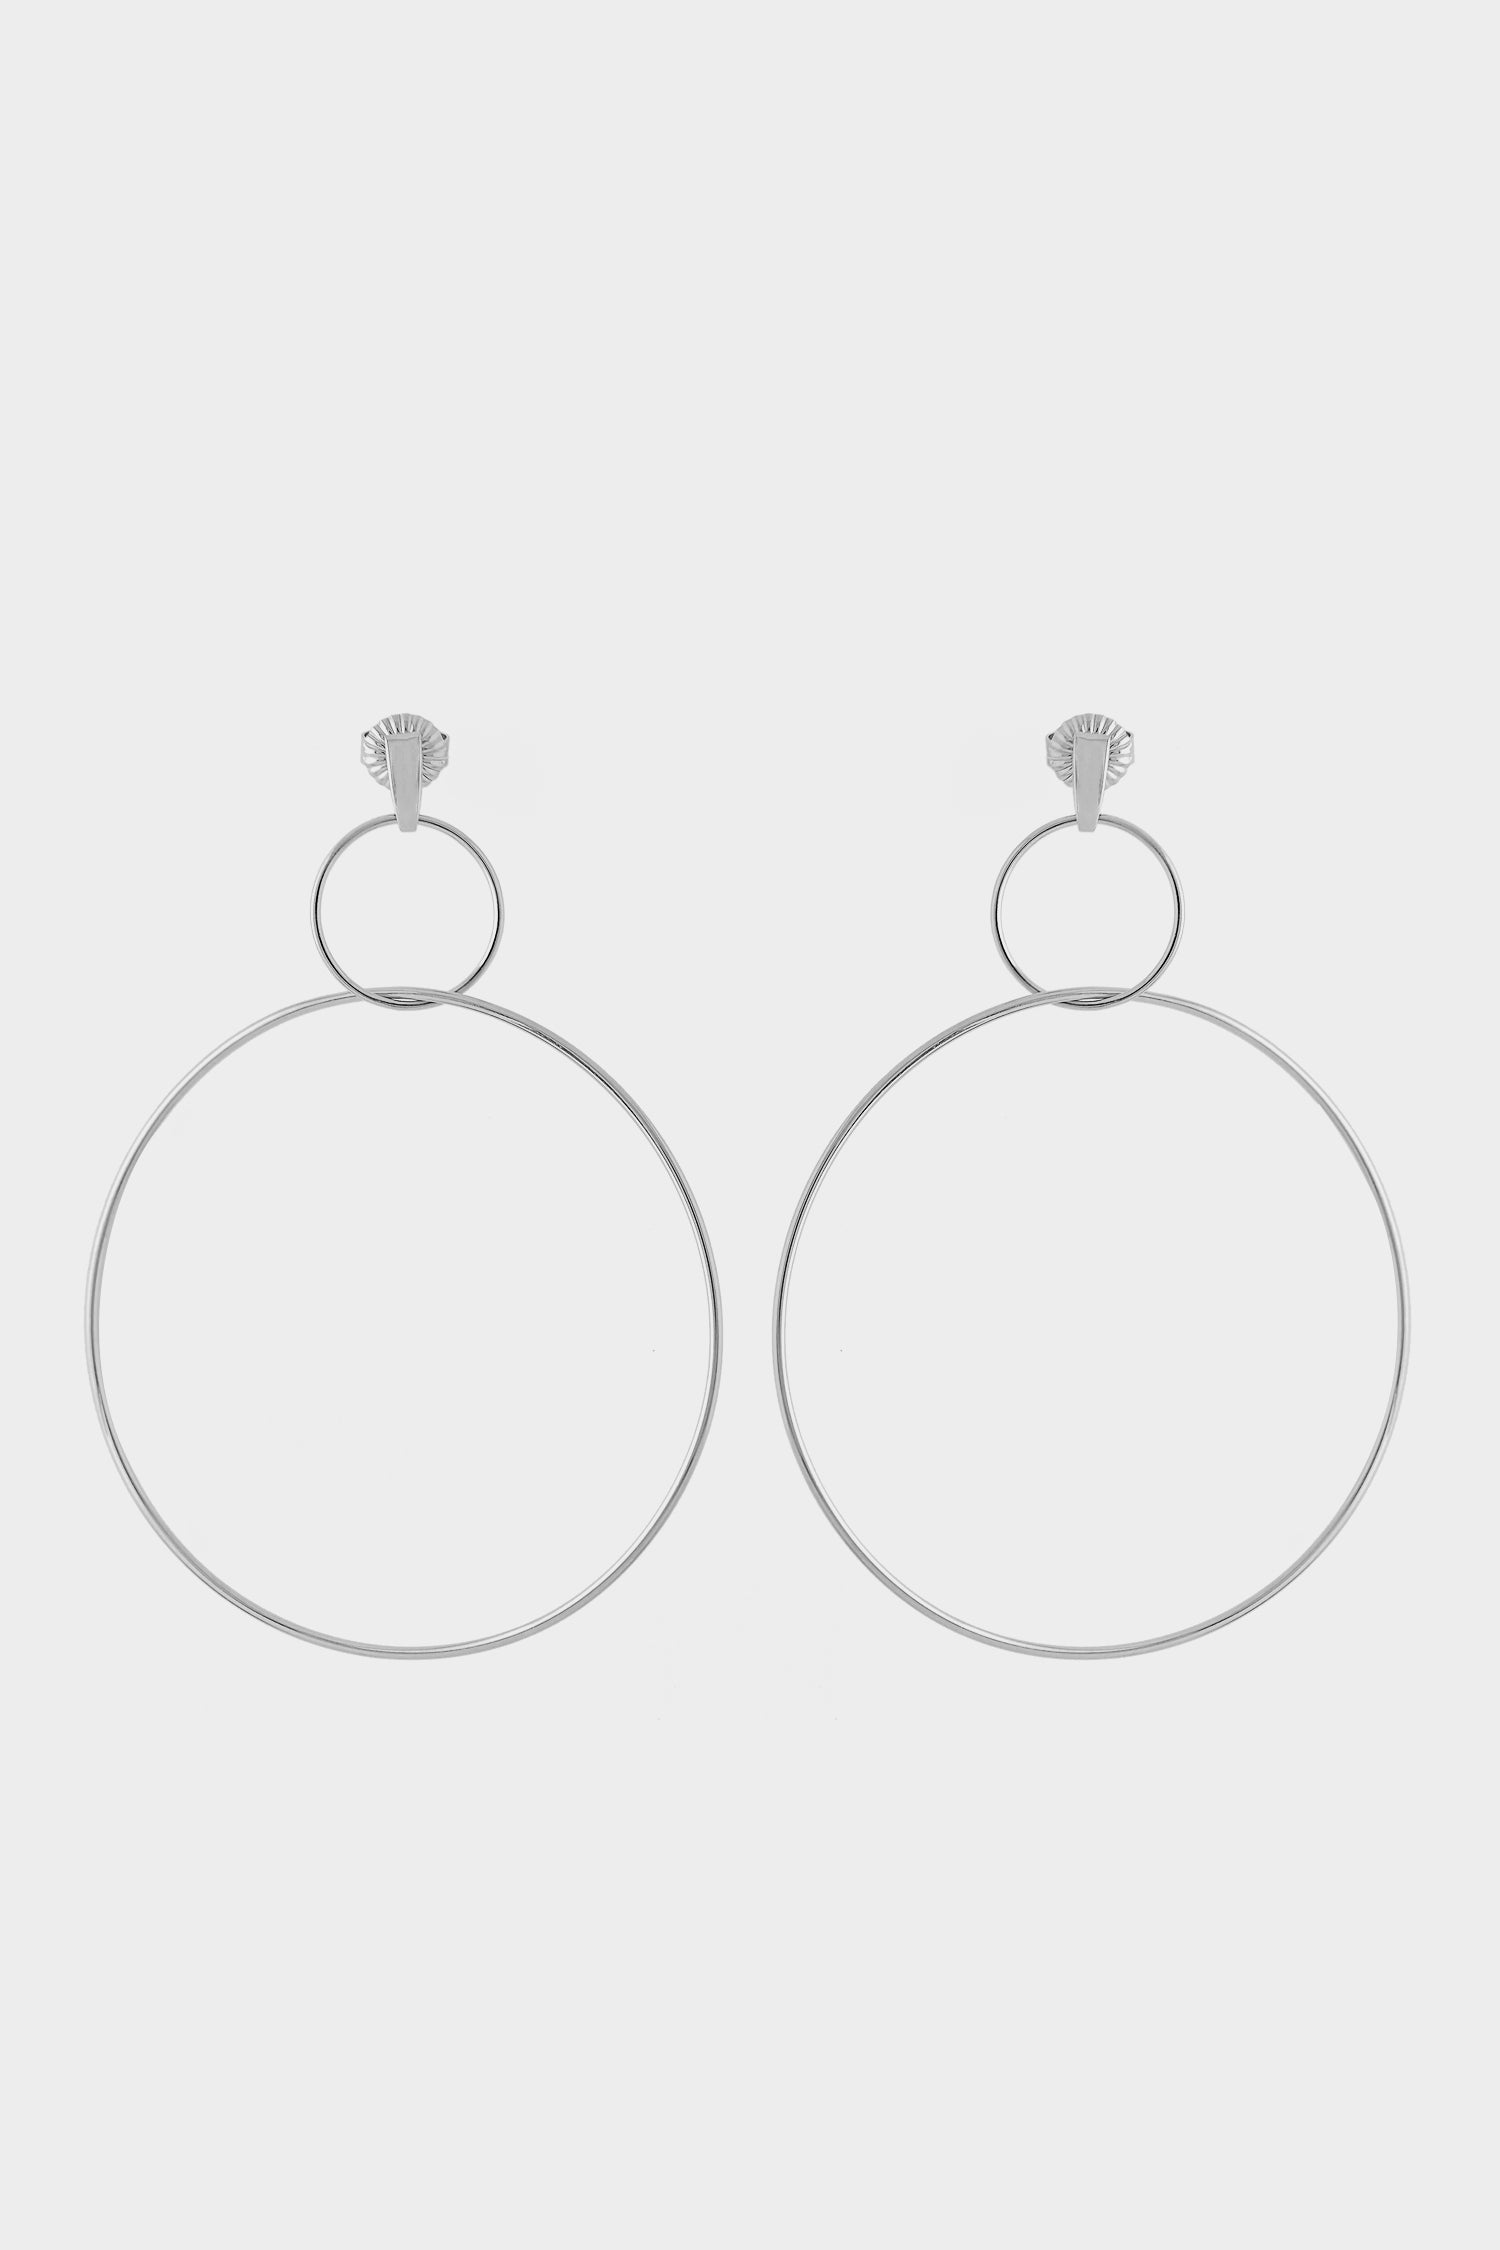 earrings fine jewelry sterling hoop brincos yafeini product small wholesale for genuine silver